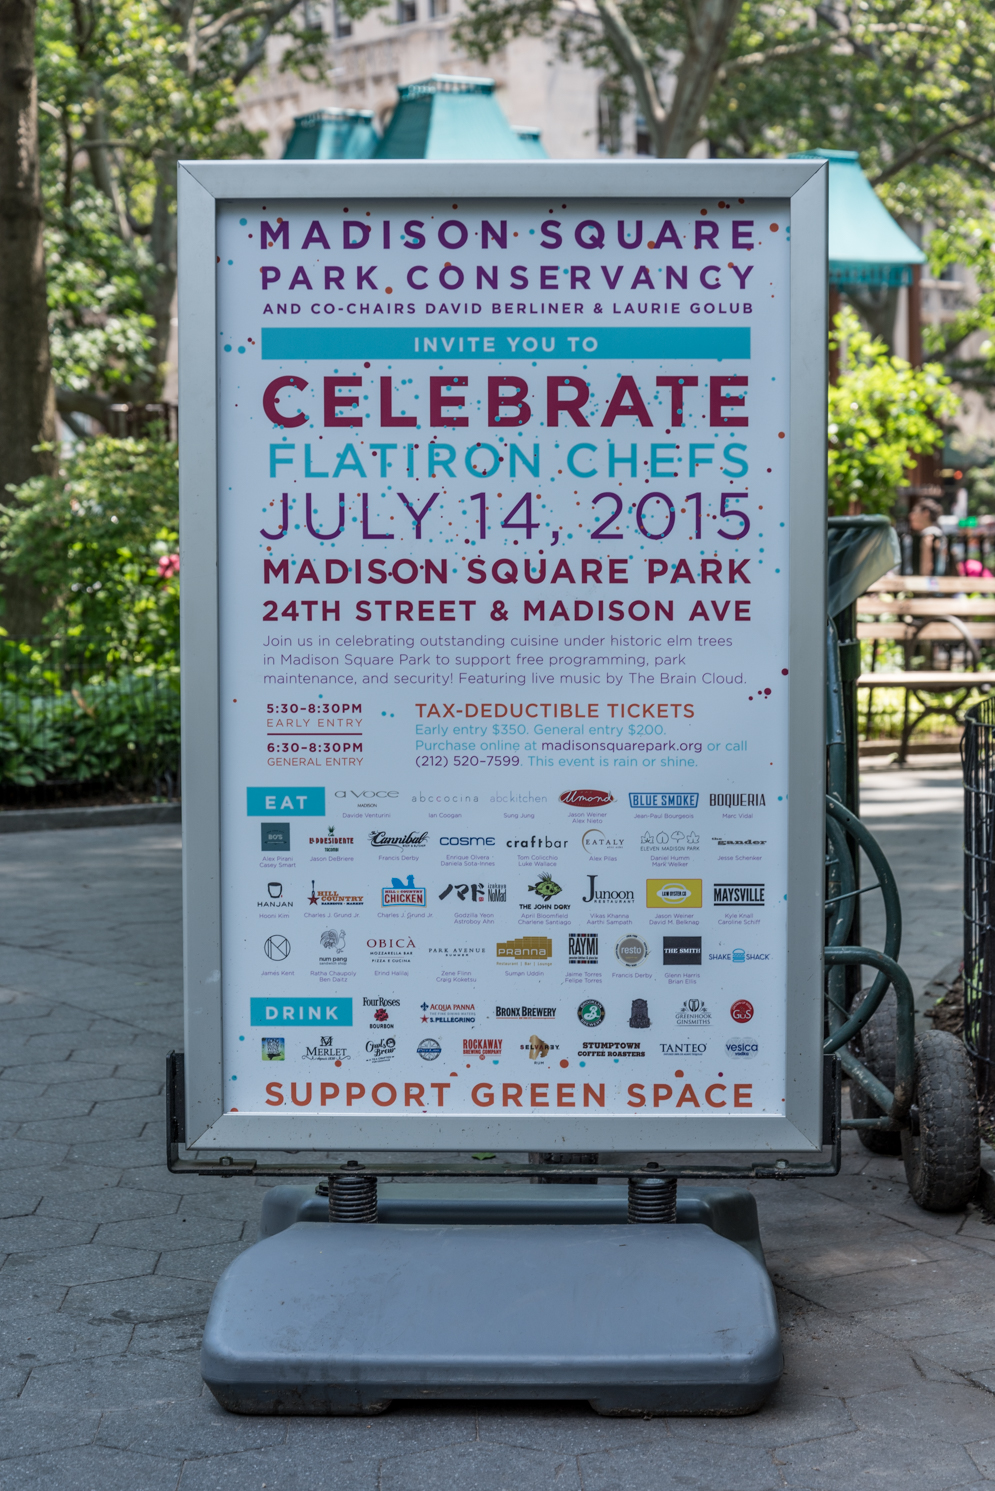 ROCK MAMA NYC LIFESTYLE BLOG - SUMMER FUN AT MADISON SQUARE PARK